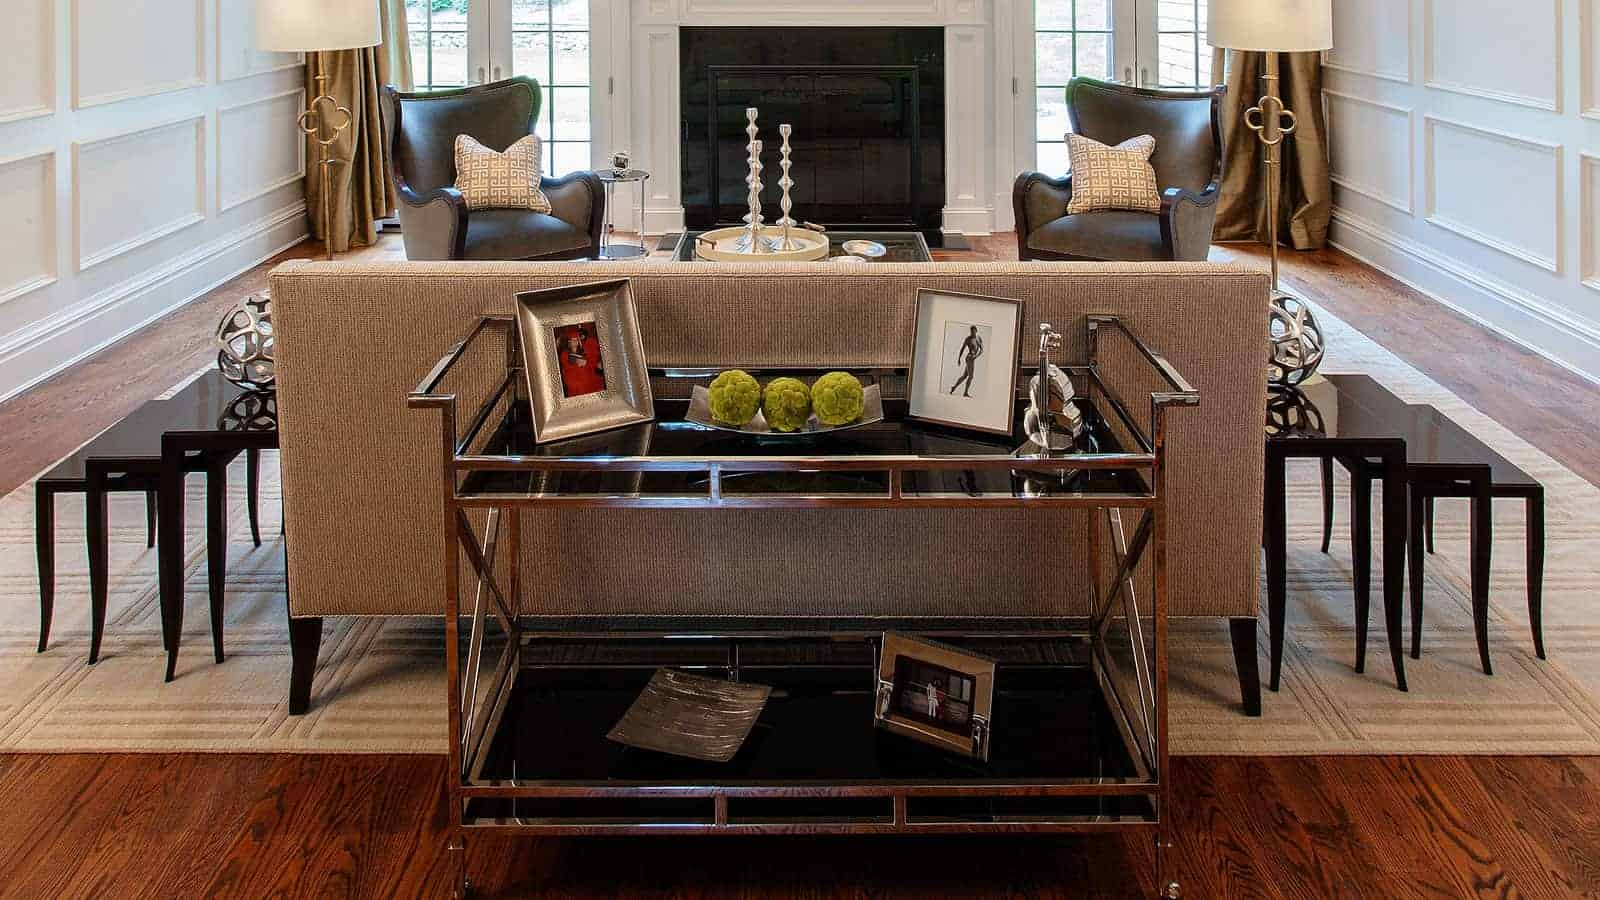 New construction residence, Old Westbury NY. Christopher Guy end tables, custom drapery. The panel moulding off-white walls warms up the space and is enhanced by the dark hardwood floors. Interior Design by Robyn B of Interiors by Just Design, Woodbury Long Island NY.